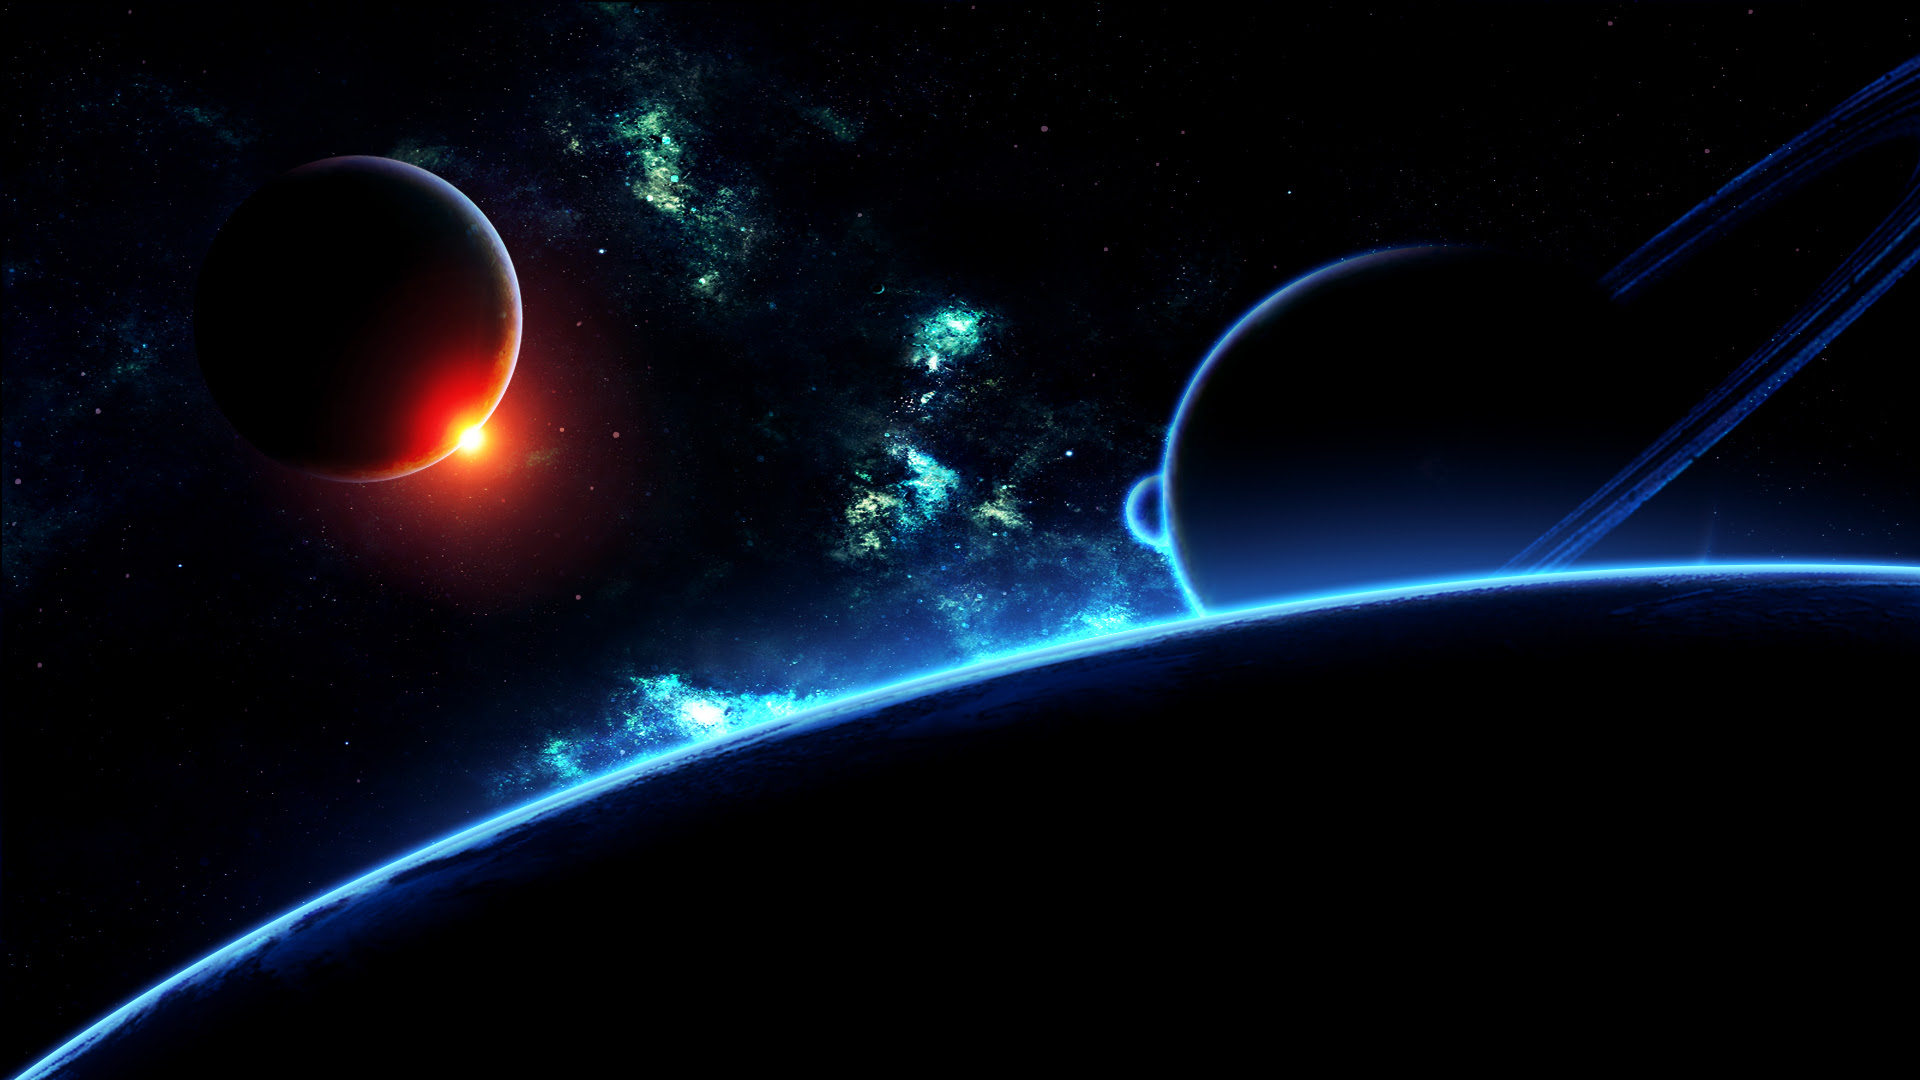 Deep Space Wallpaper Background